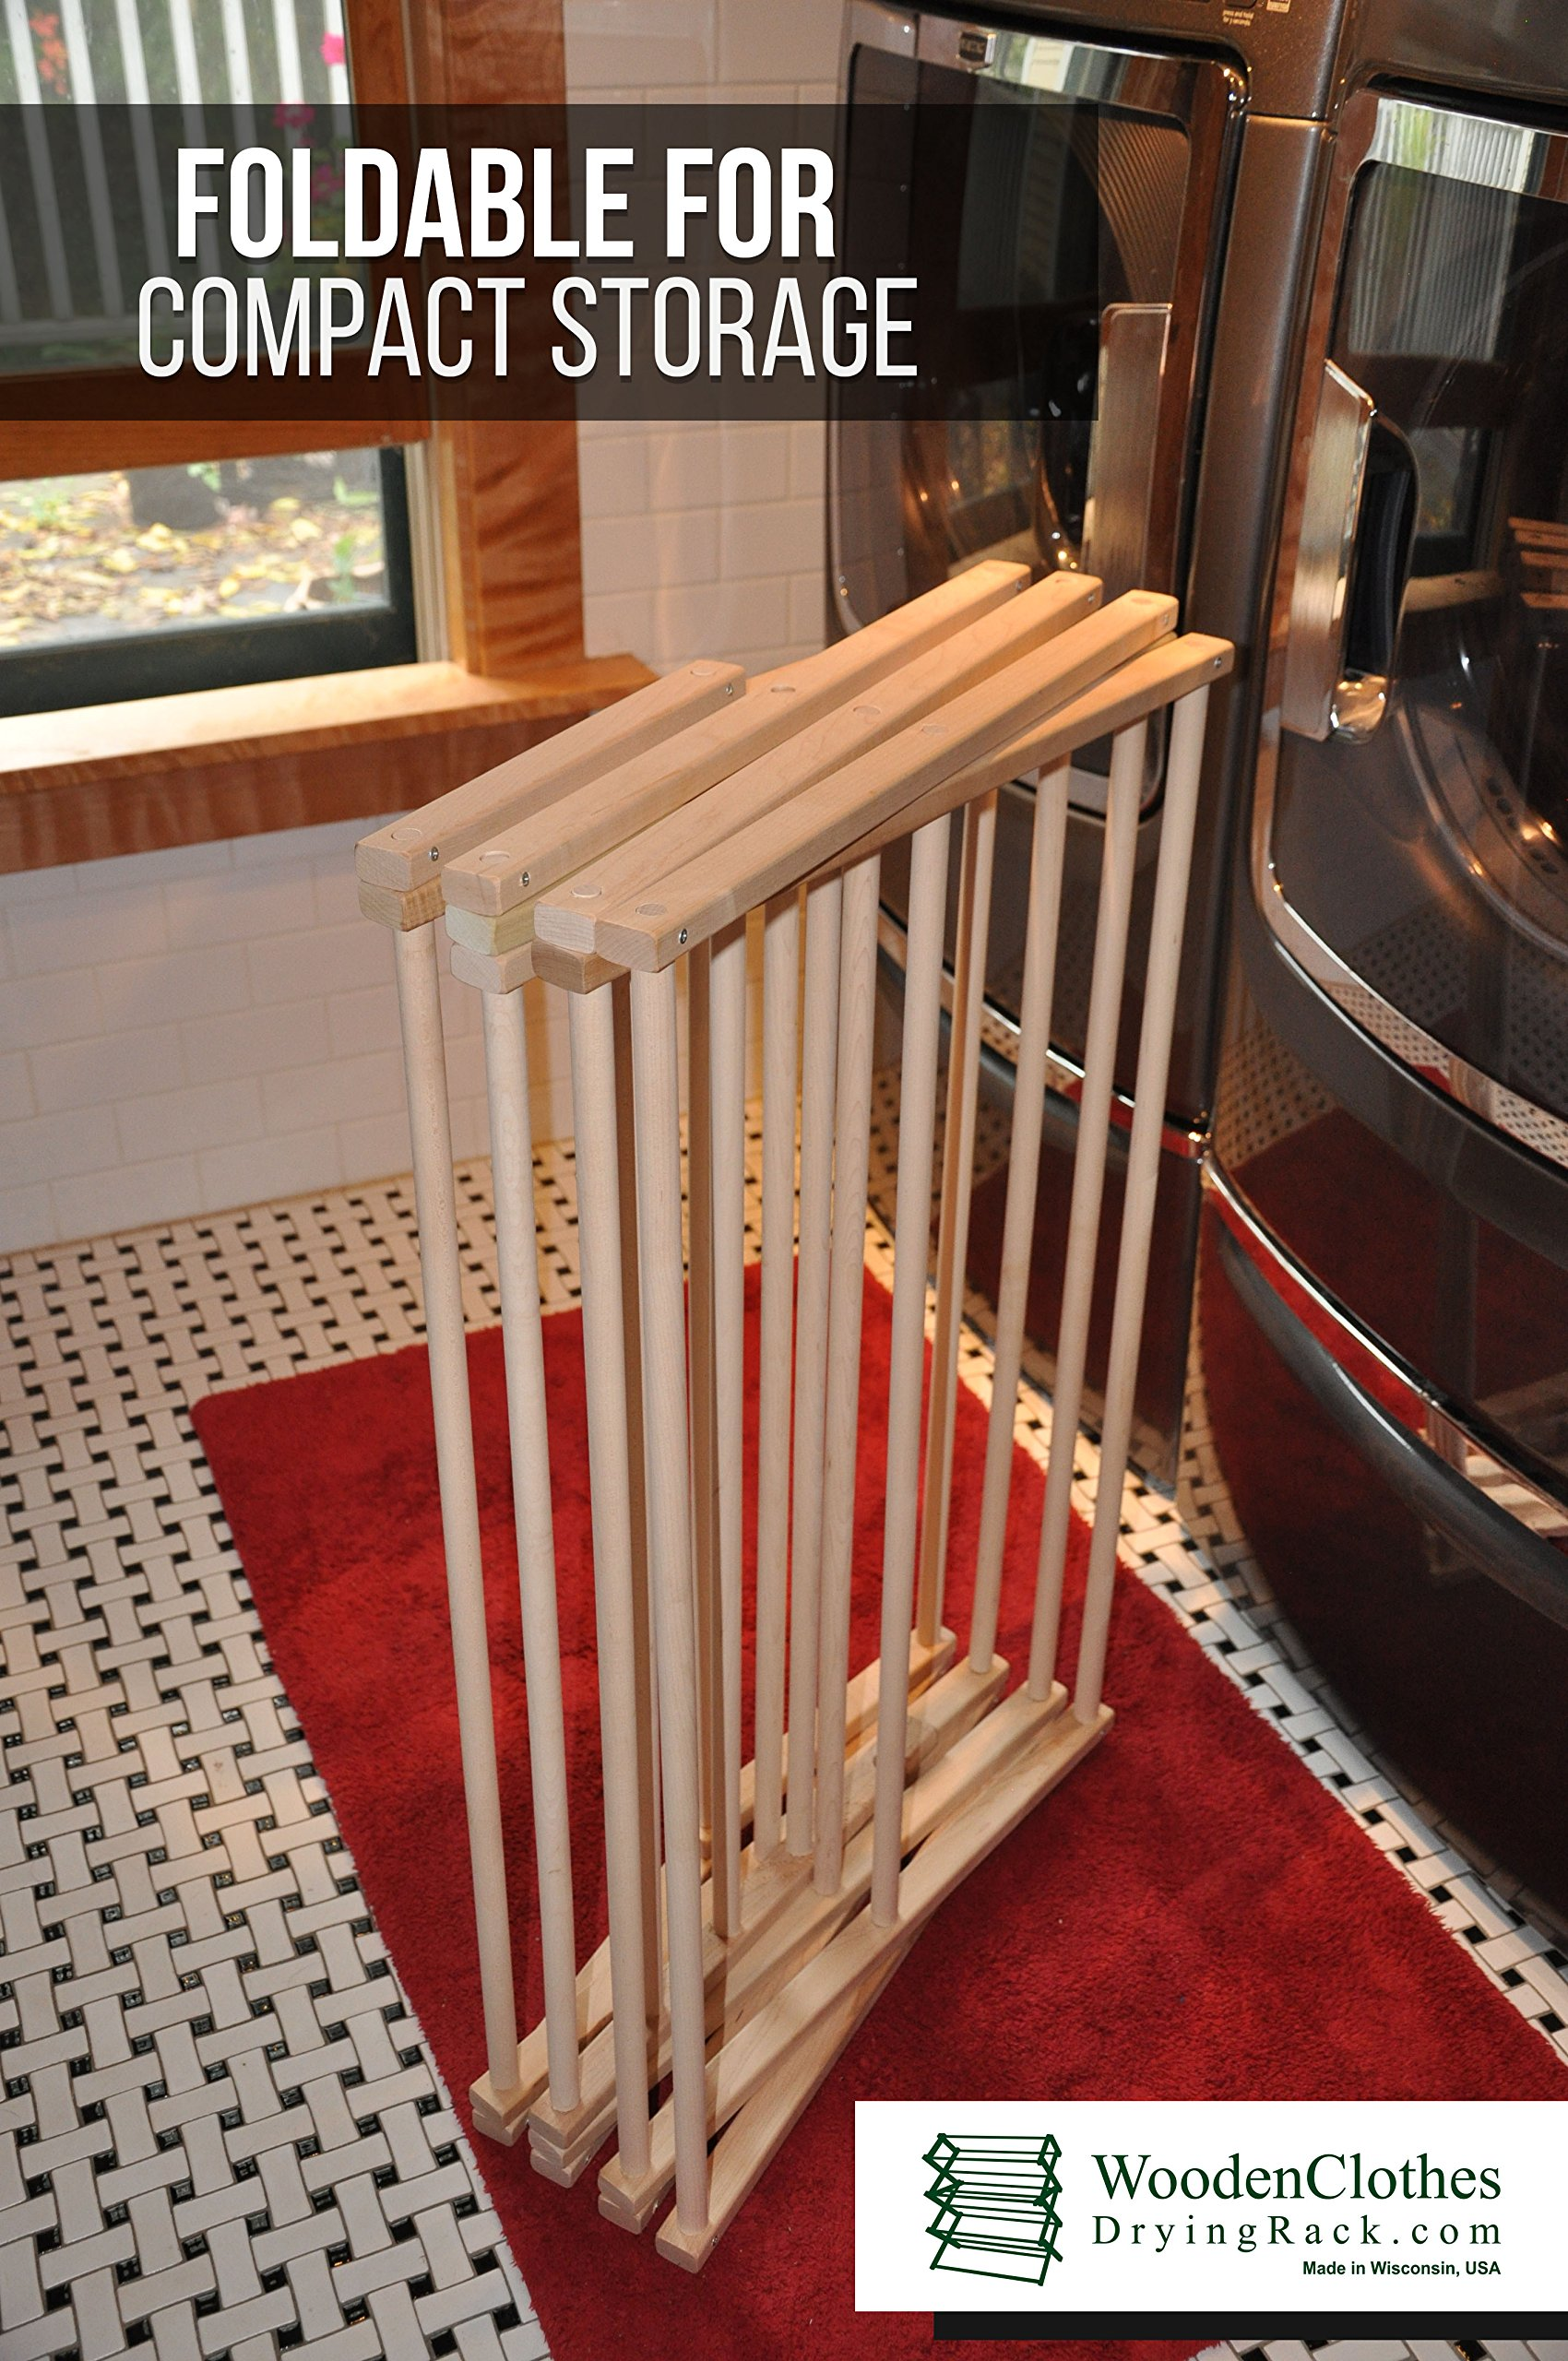 Medium Wooden Clothes Drying Rack by Benson Wood Products by Benson Wood Products (Image #3)